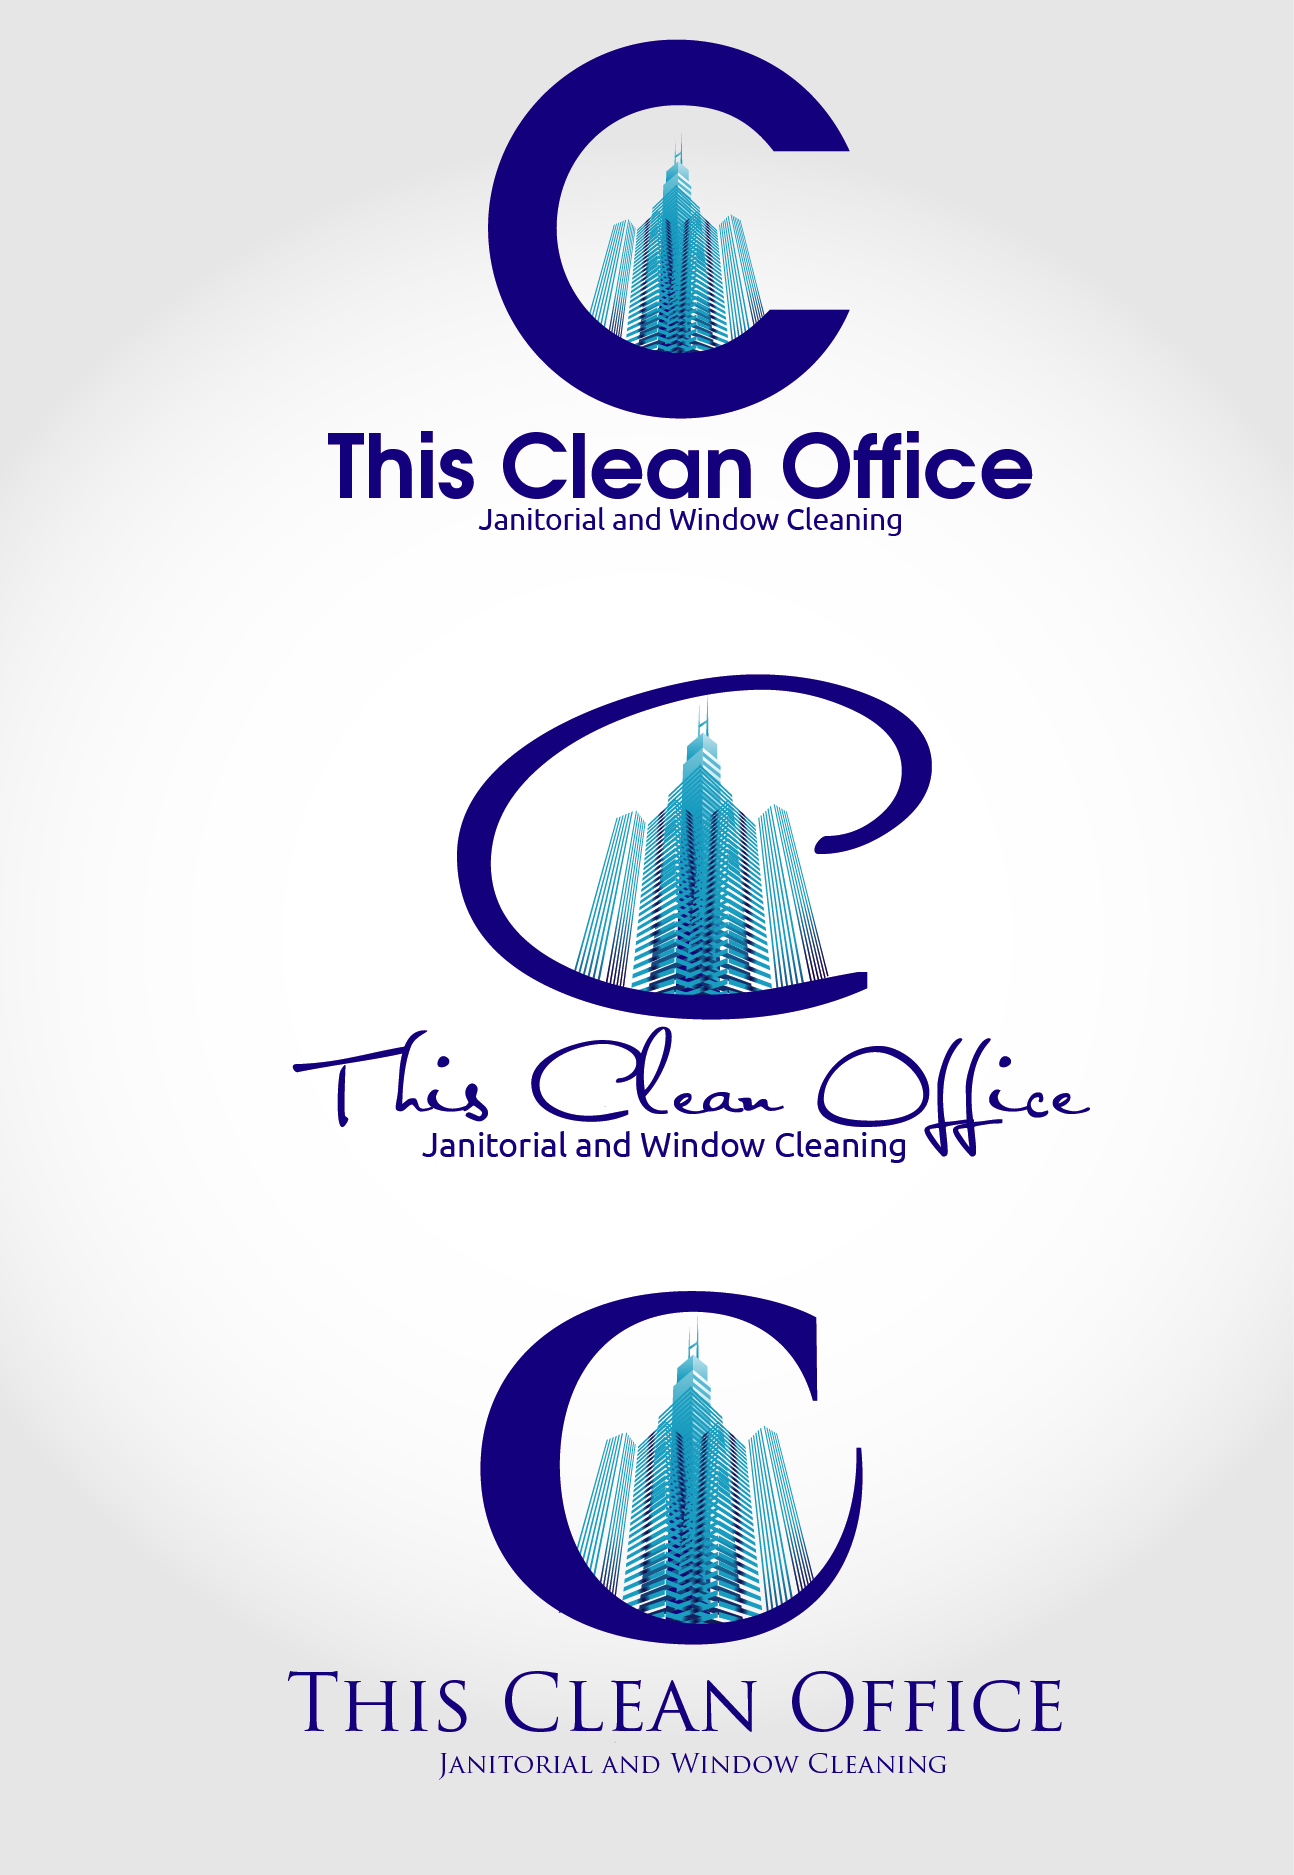 Logo Design by VENTSISLAV KOVACHEV - Entry No. 34 in the Logo Design Contest Professional and Unforgettable Logo Design for This Clean Office.